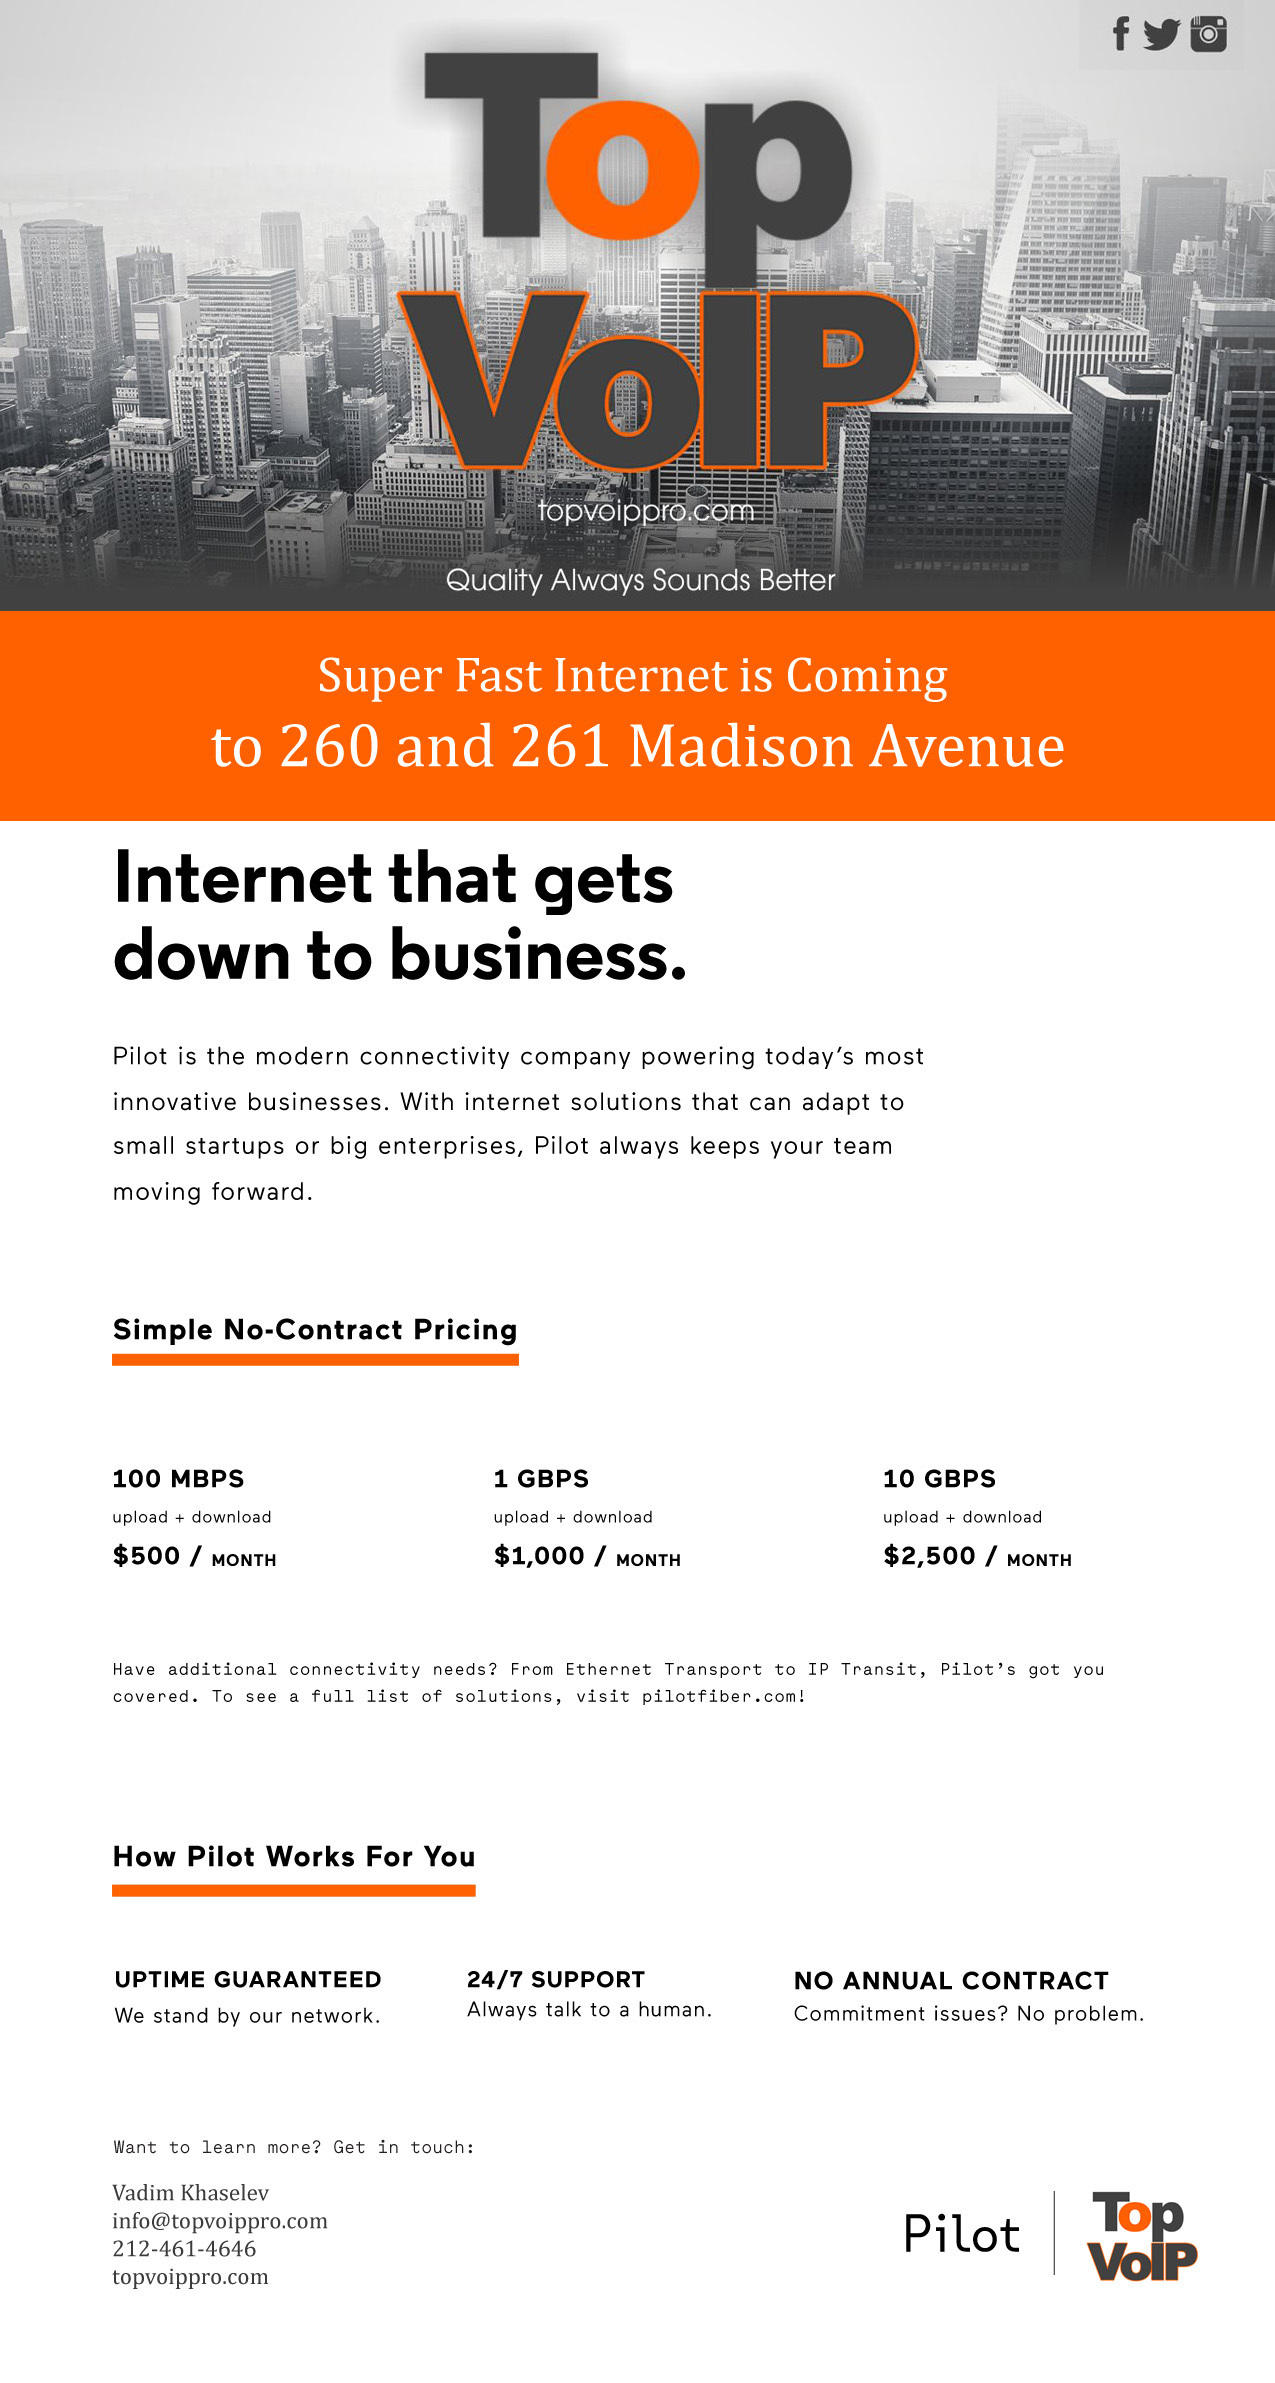 Top VoIP image 6